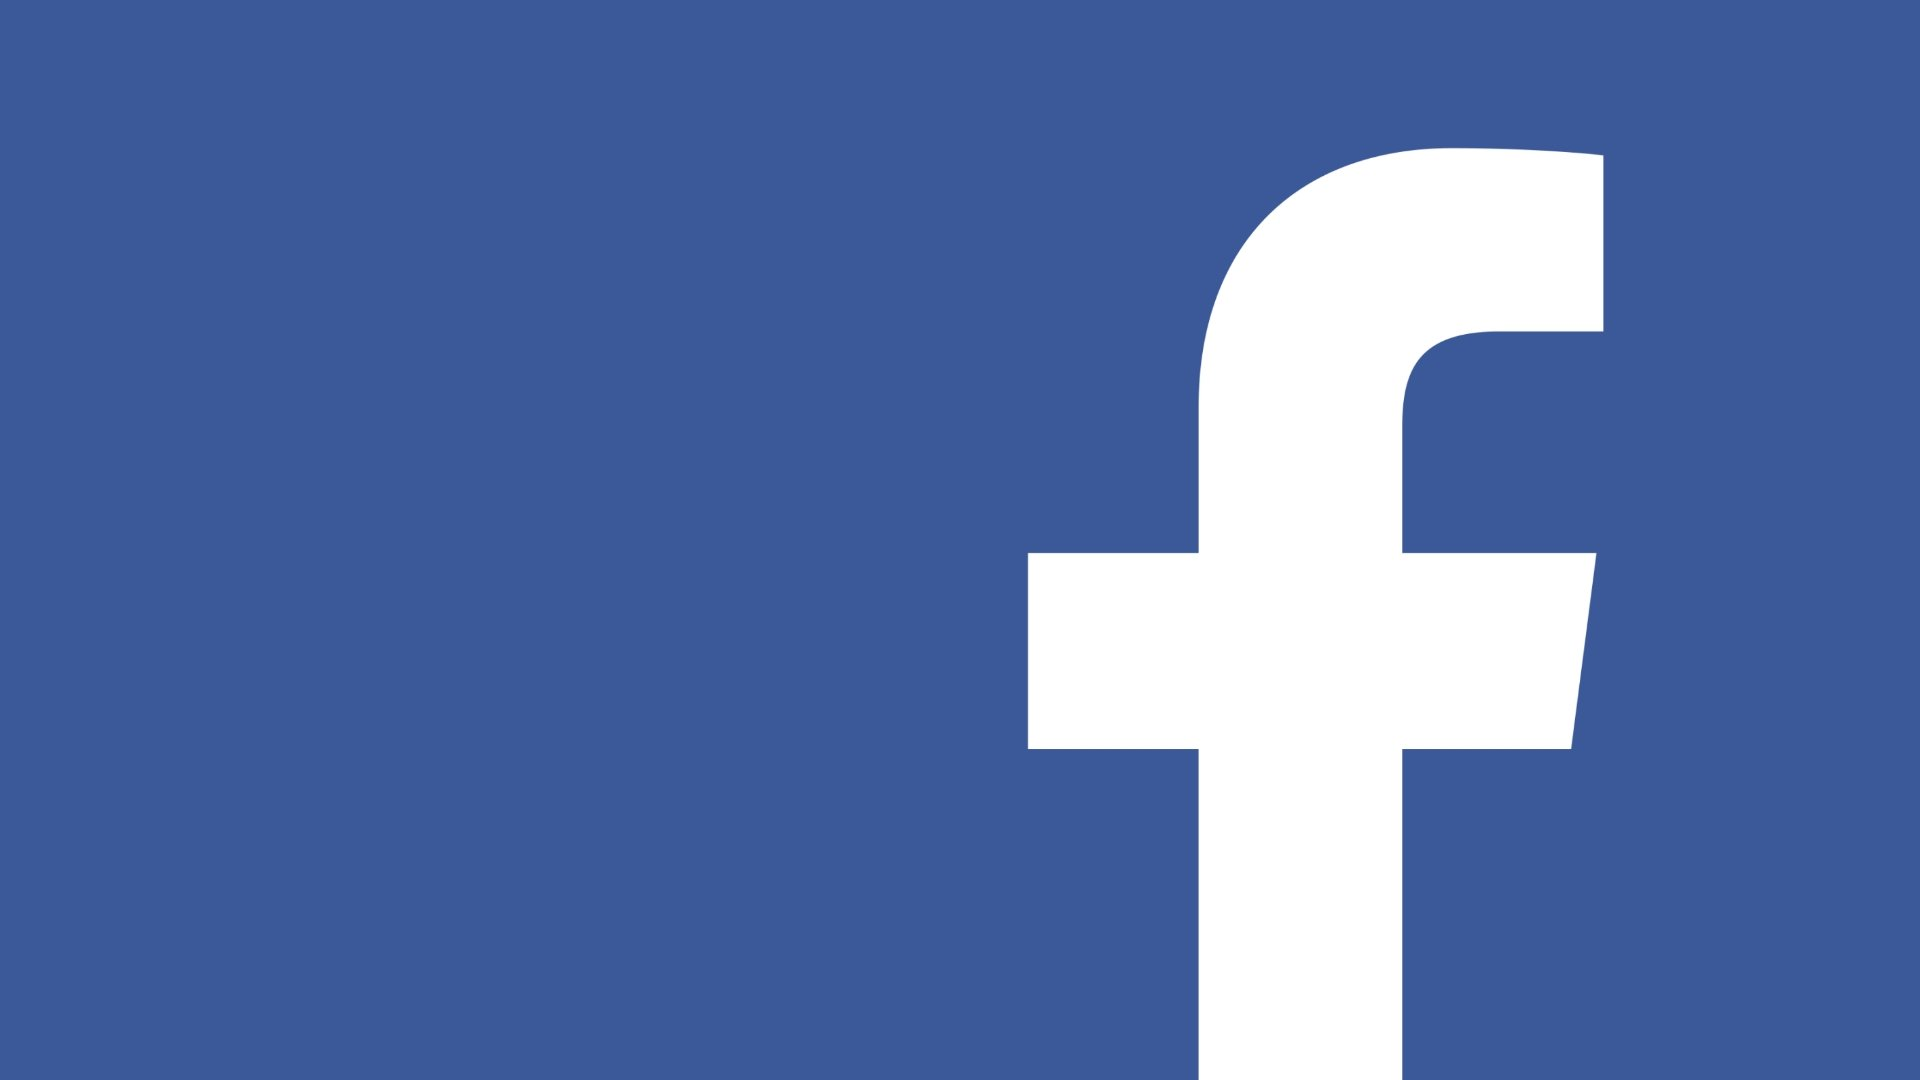 Facebook pourrait proposer ou plut t imposer encore plus de publicit and - Rester connecte facebook ...